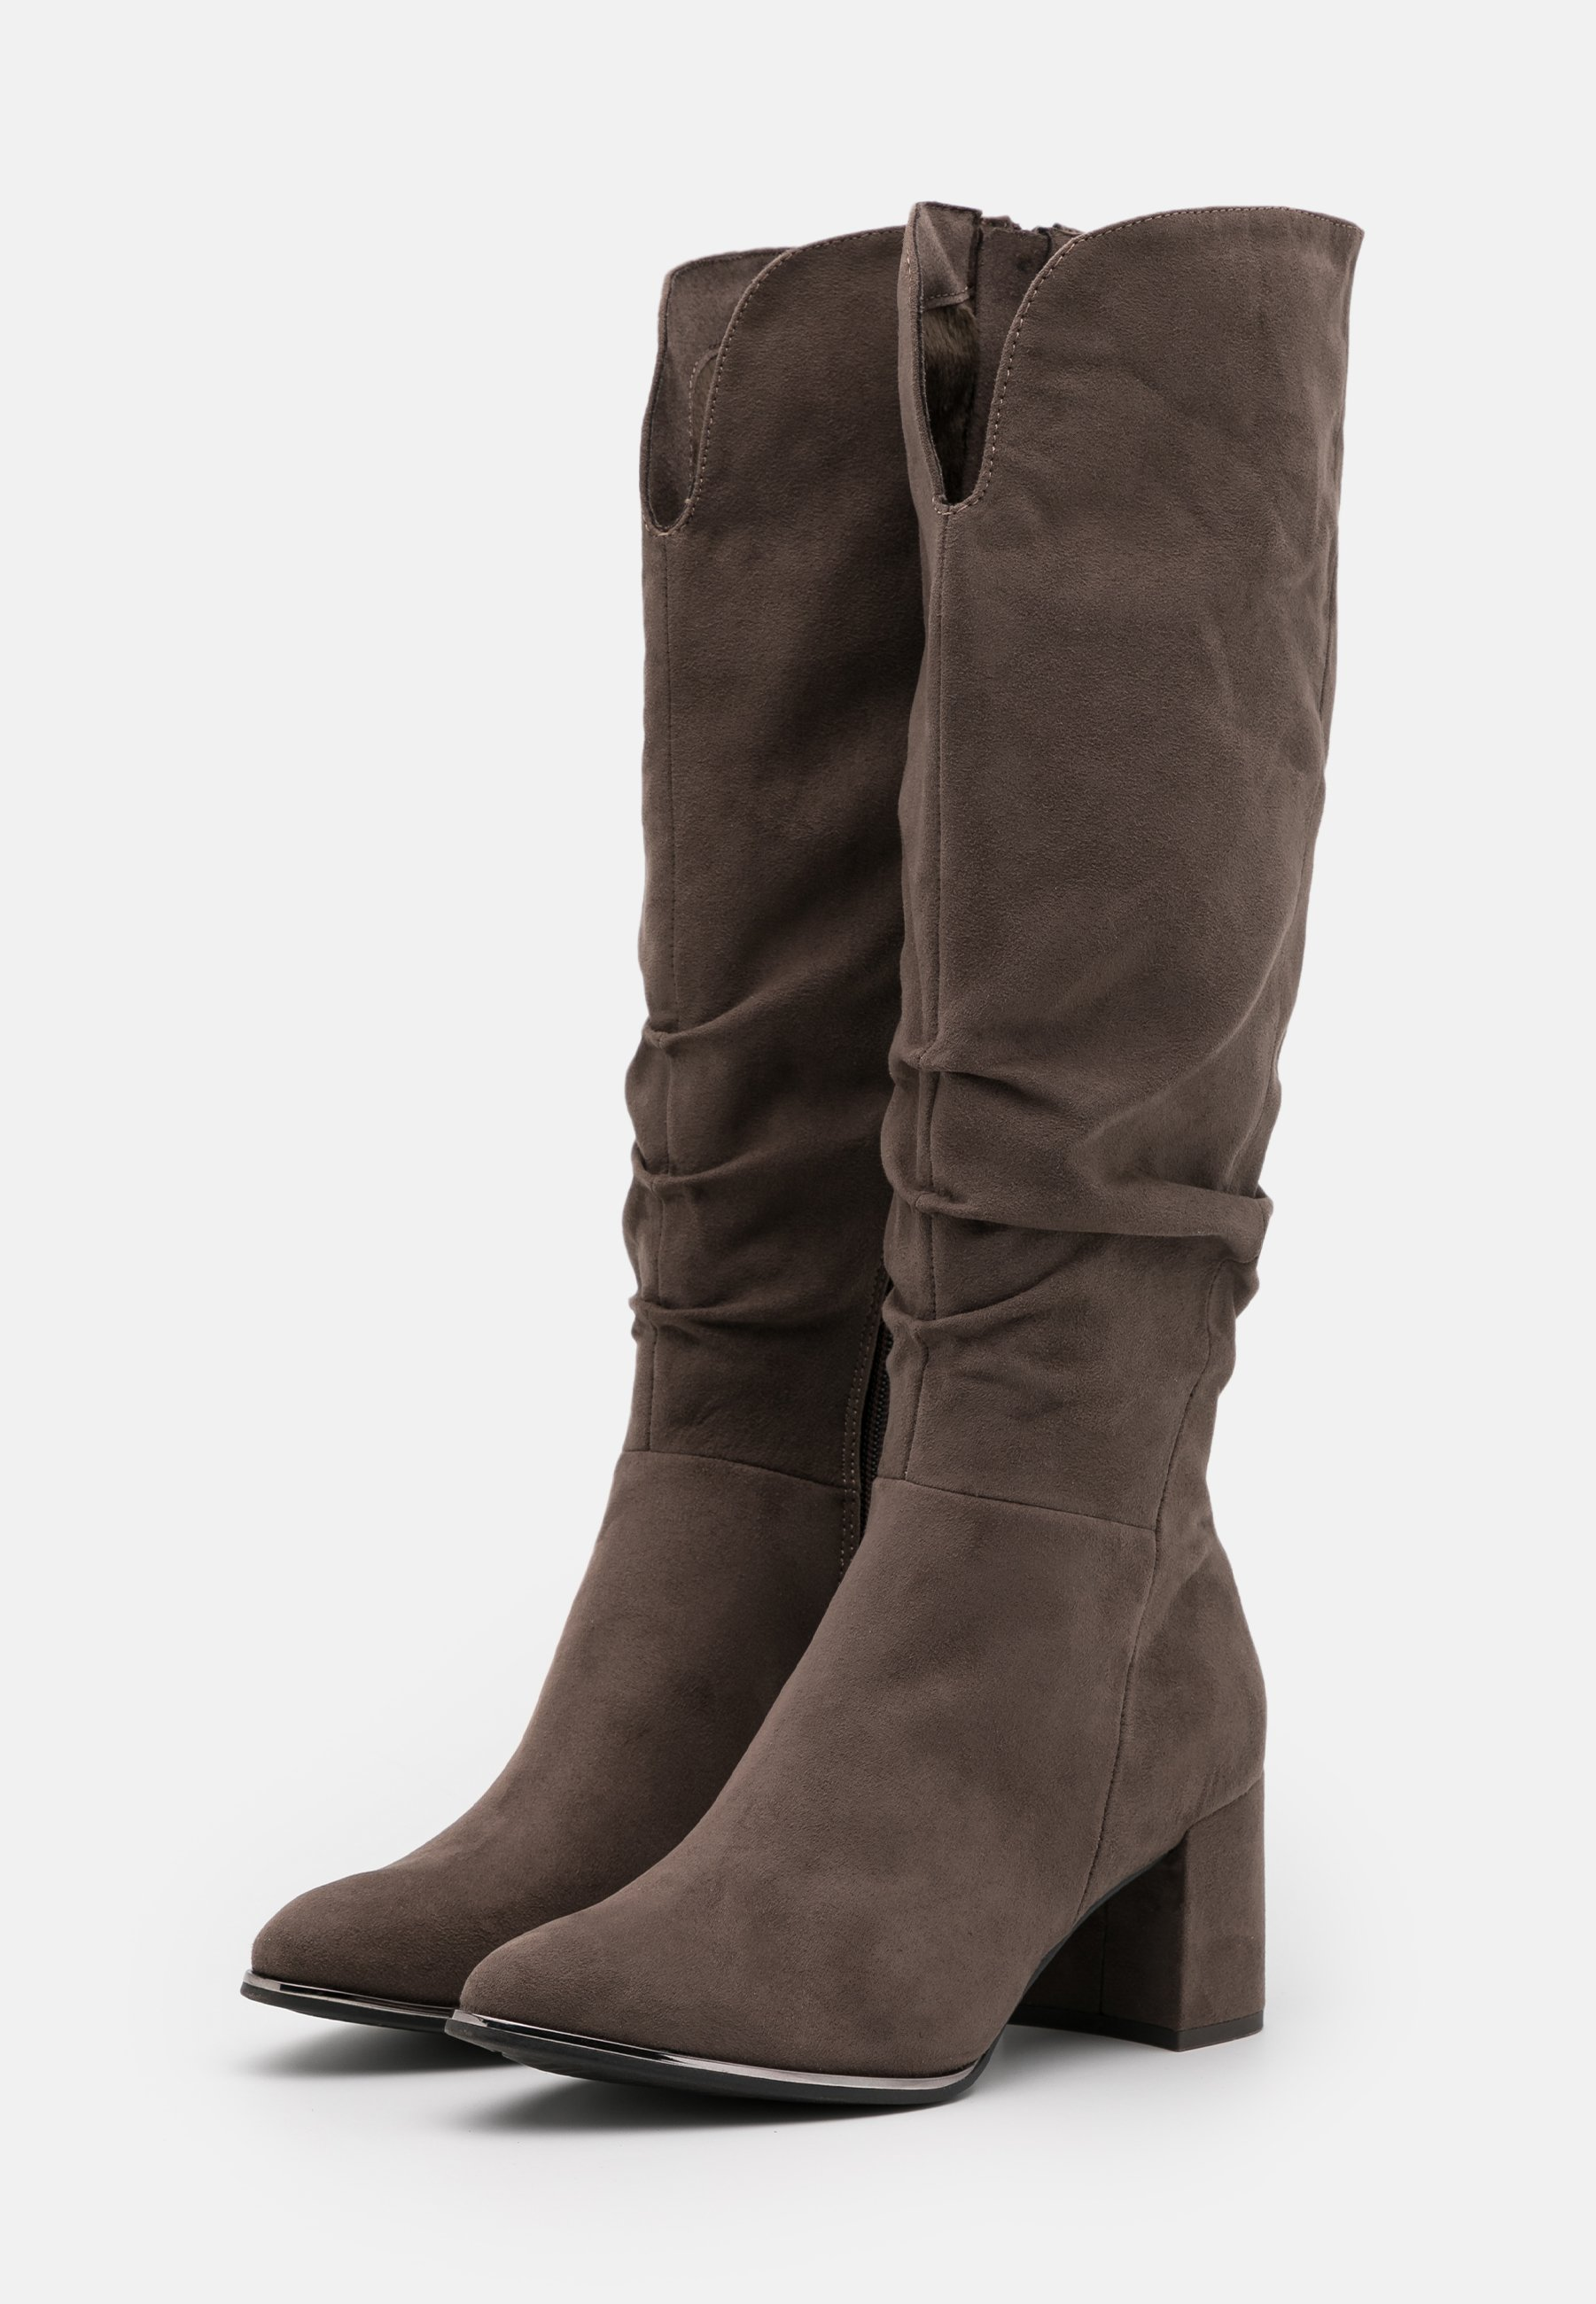 Marco Tozzi Stiefel pepper/taupe